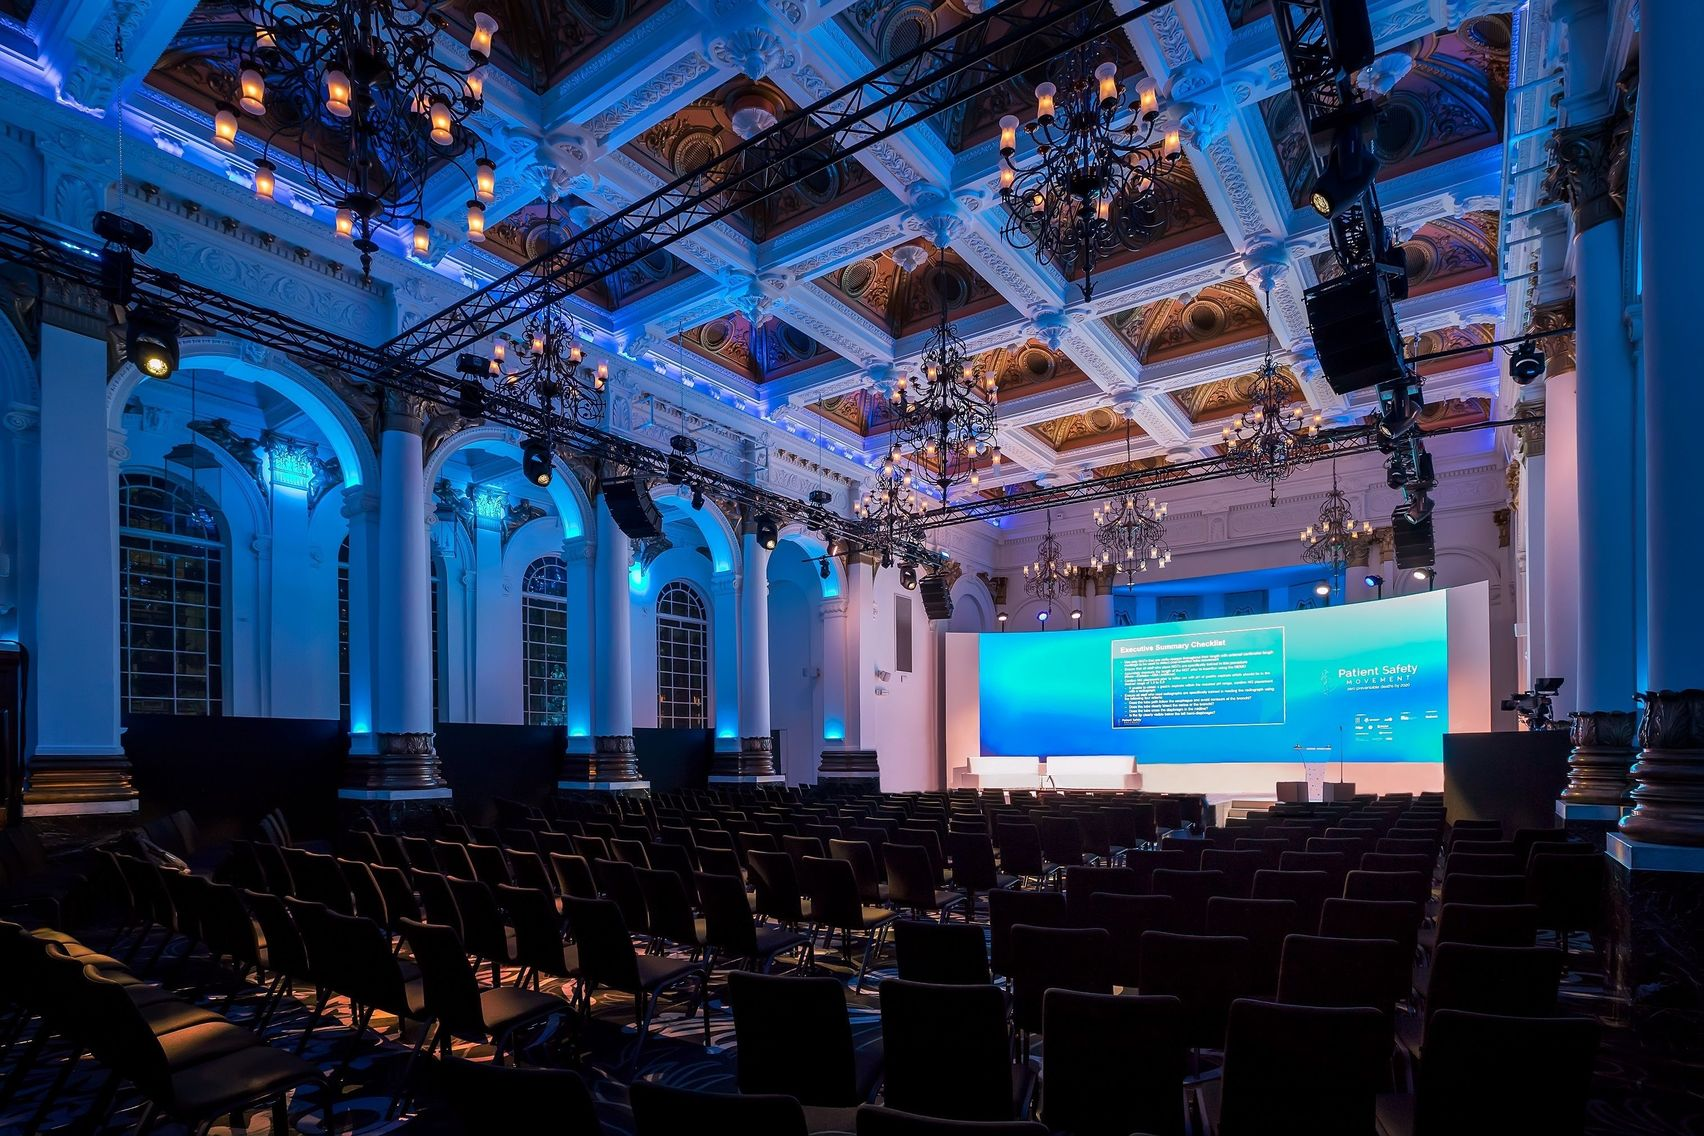 A large london conference venue with high ceilings and arched windows.